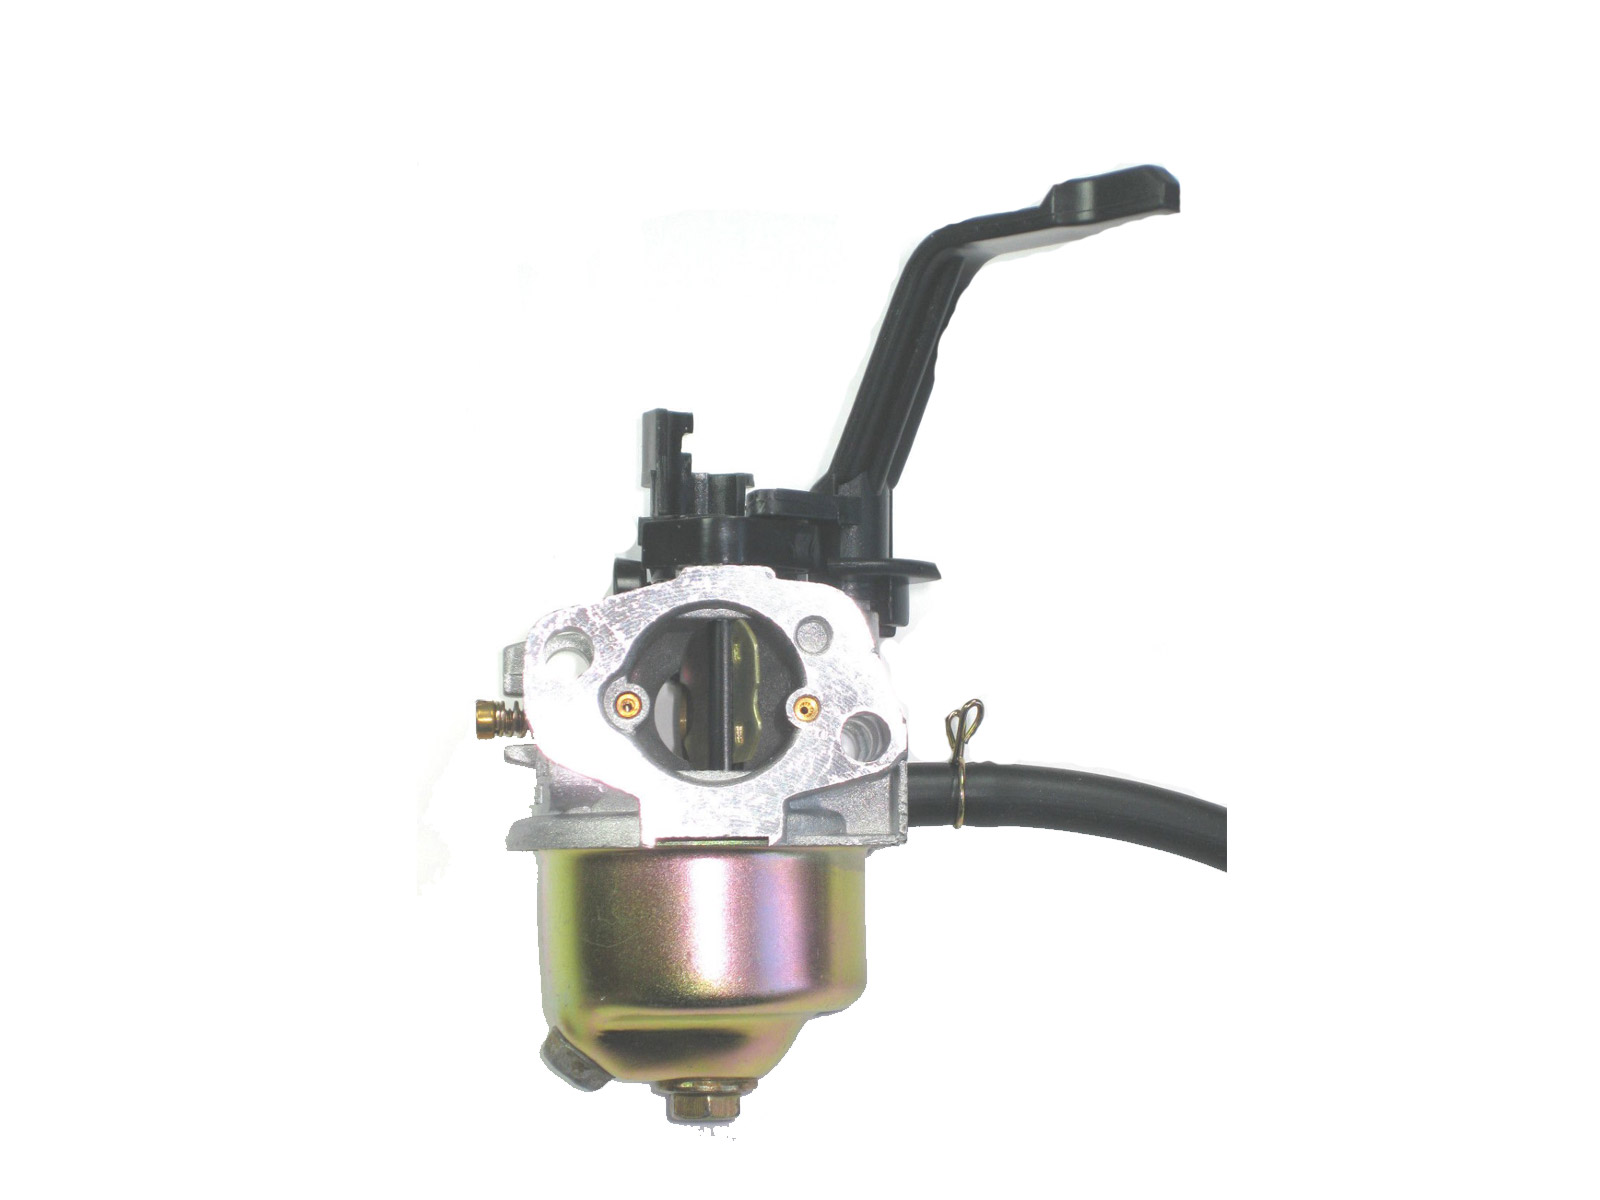 Proven Part GX200 Generator carburetor